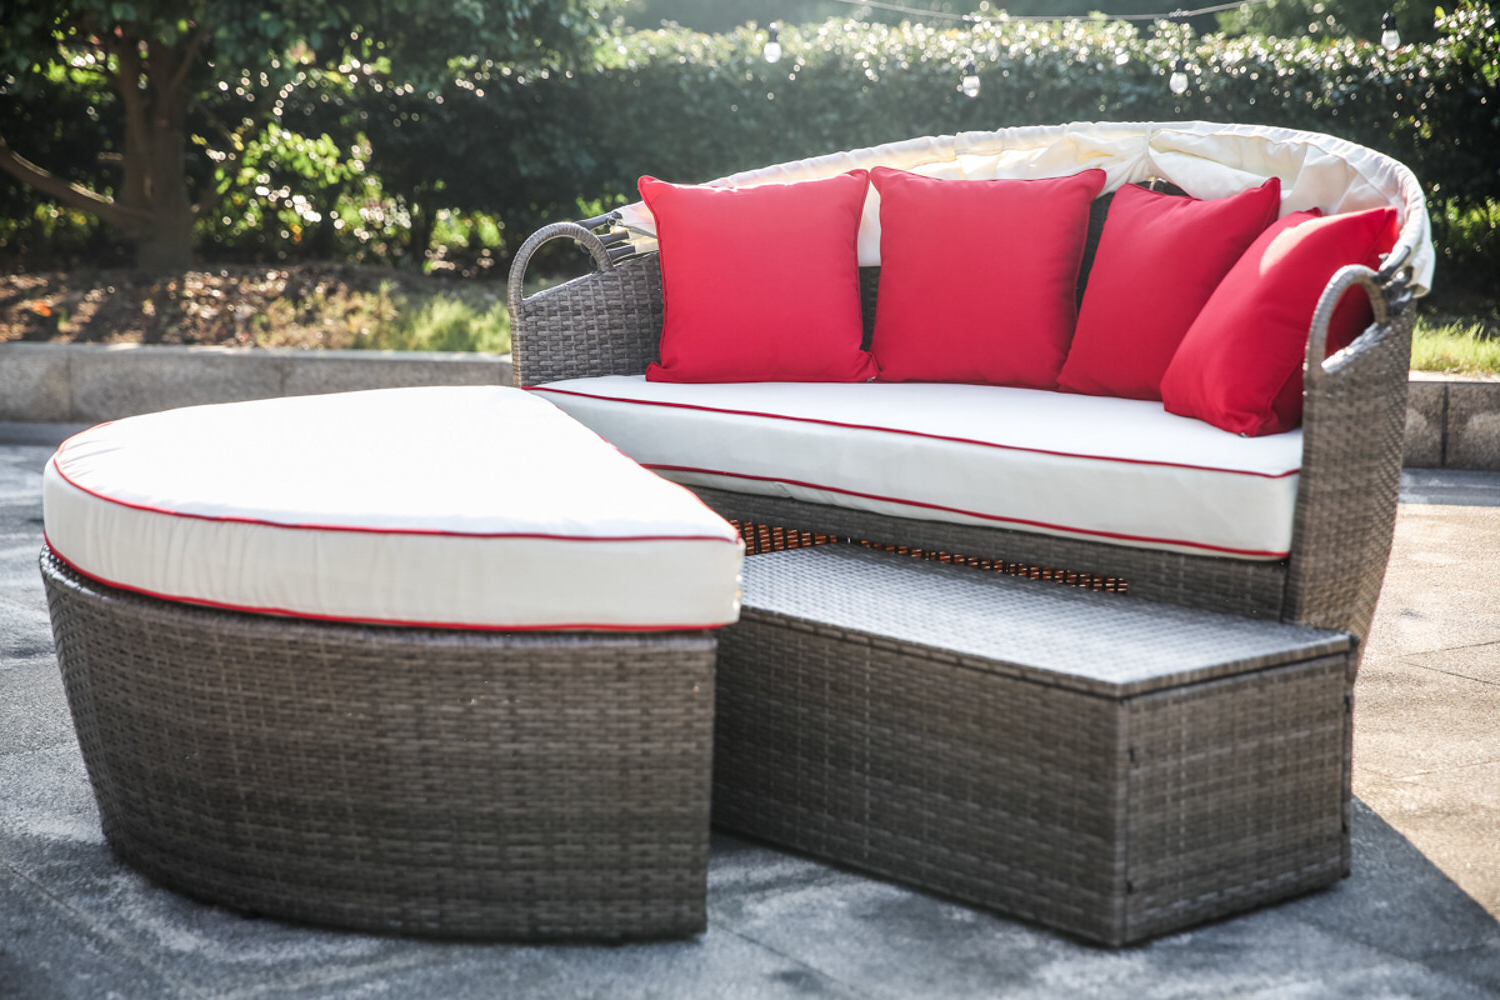 Newest Fansler Patio Daybed With Cushions In Brentwood Patio Daybeds With Cushions (View 18 of 25)